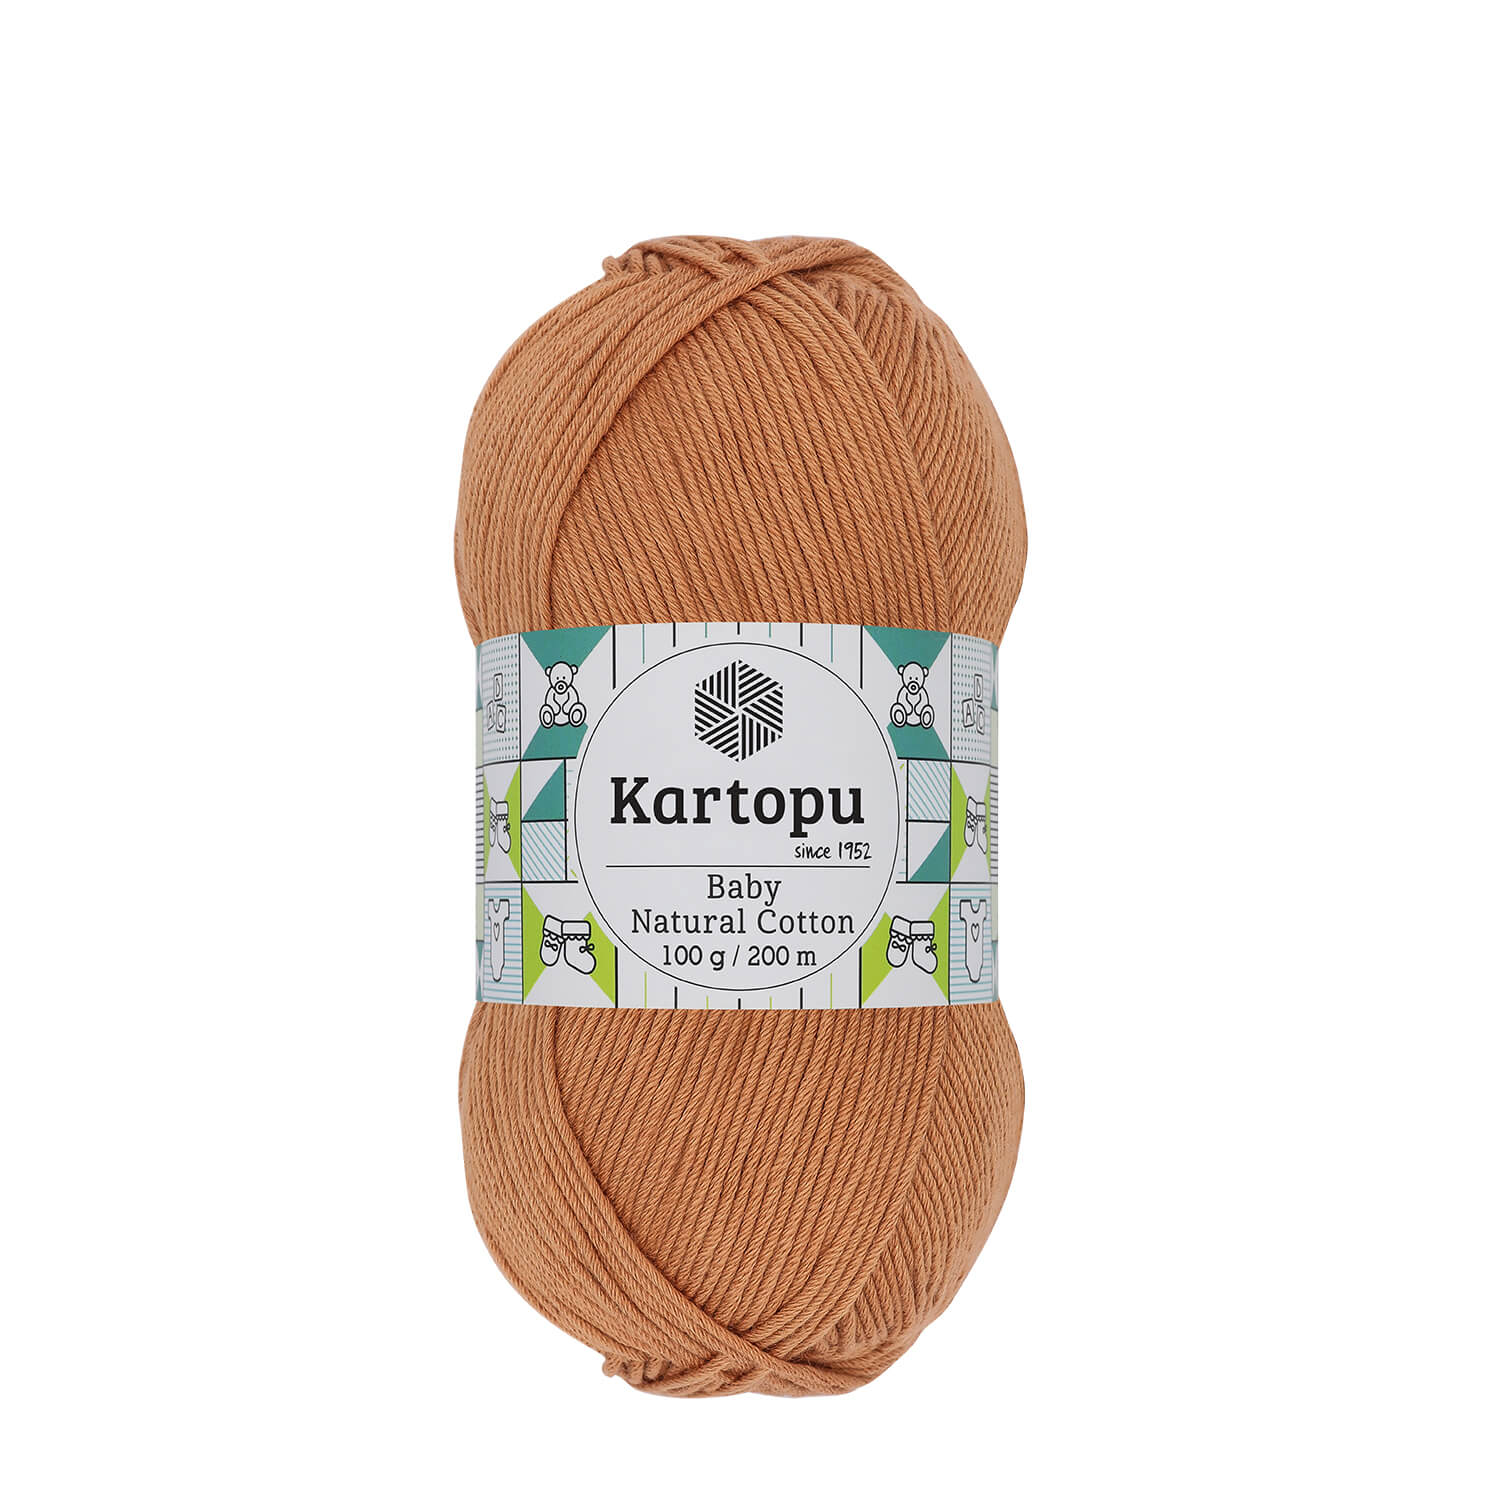 Baby Natural Cotton K261